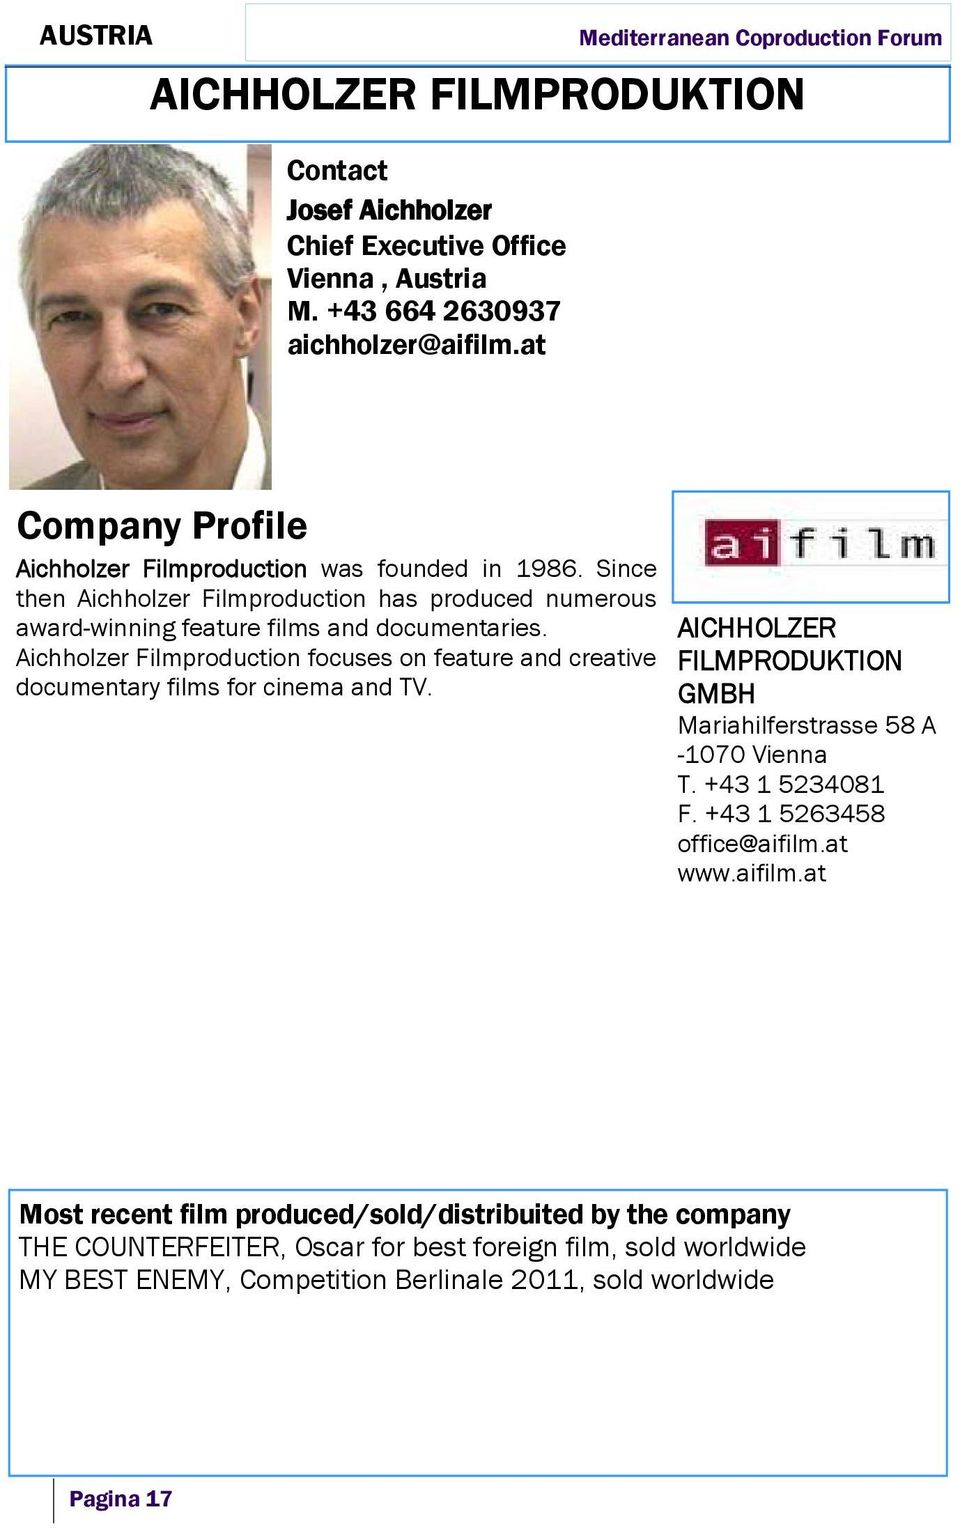 Aichholzer Filmproduction focuses on feature and creative documentary films for cinema and TV.